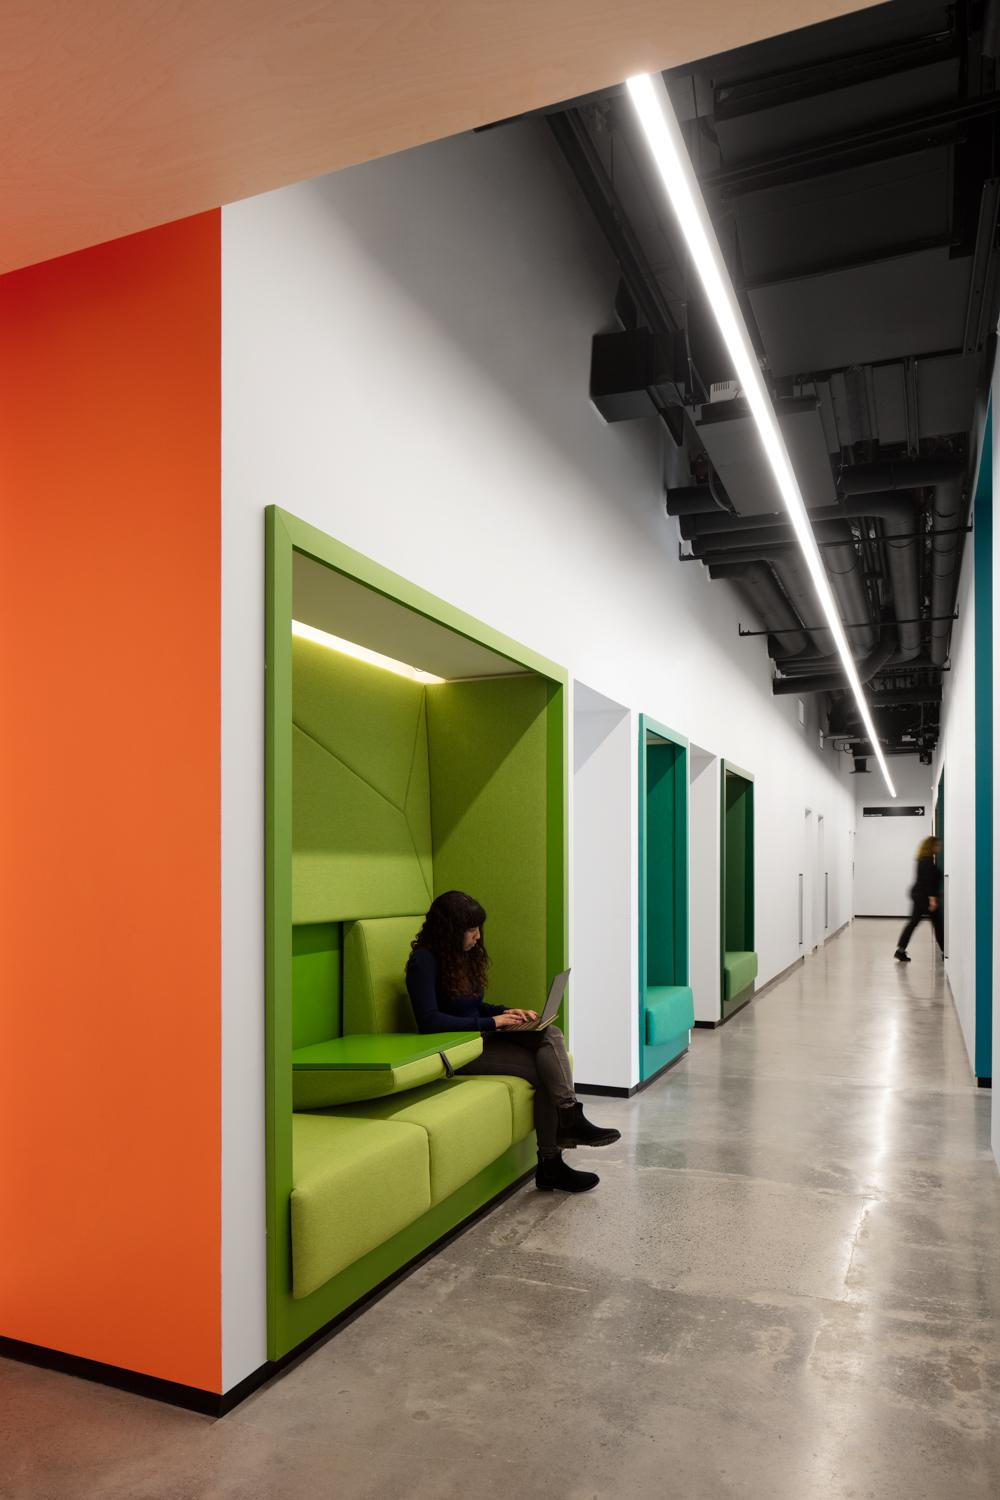 green and teal seating nooks recessed into the hallway wall in OCAD U CO